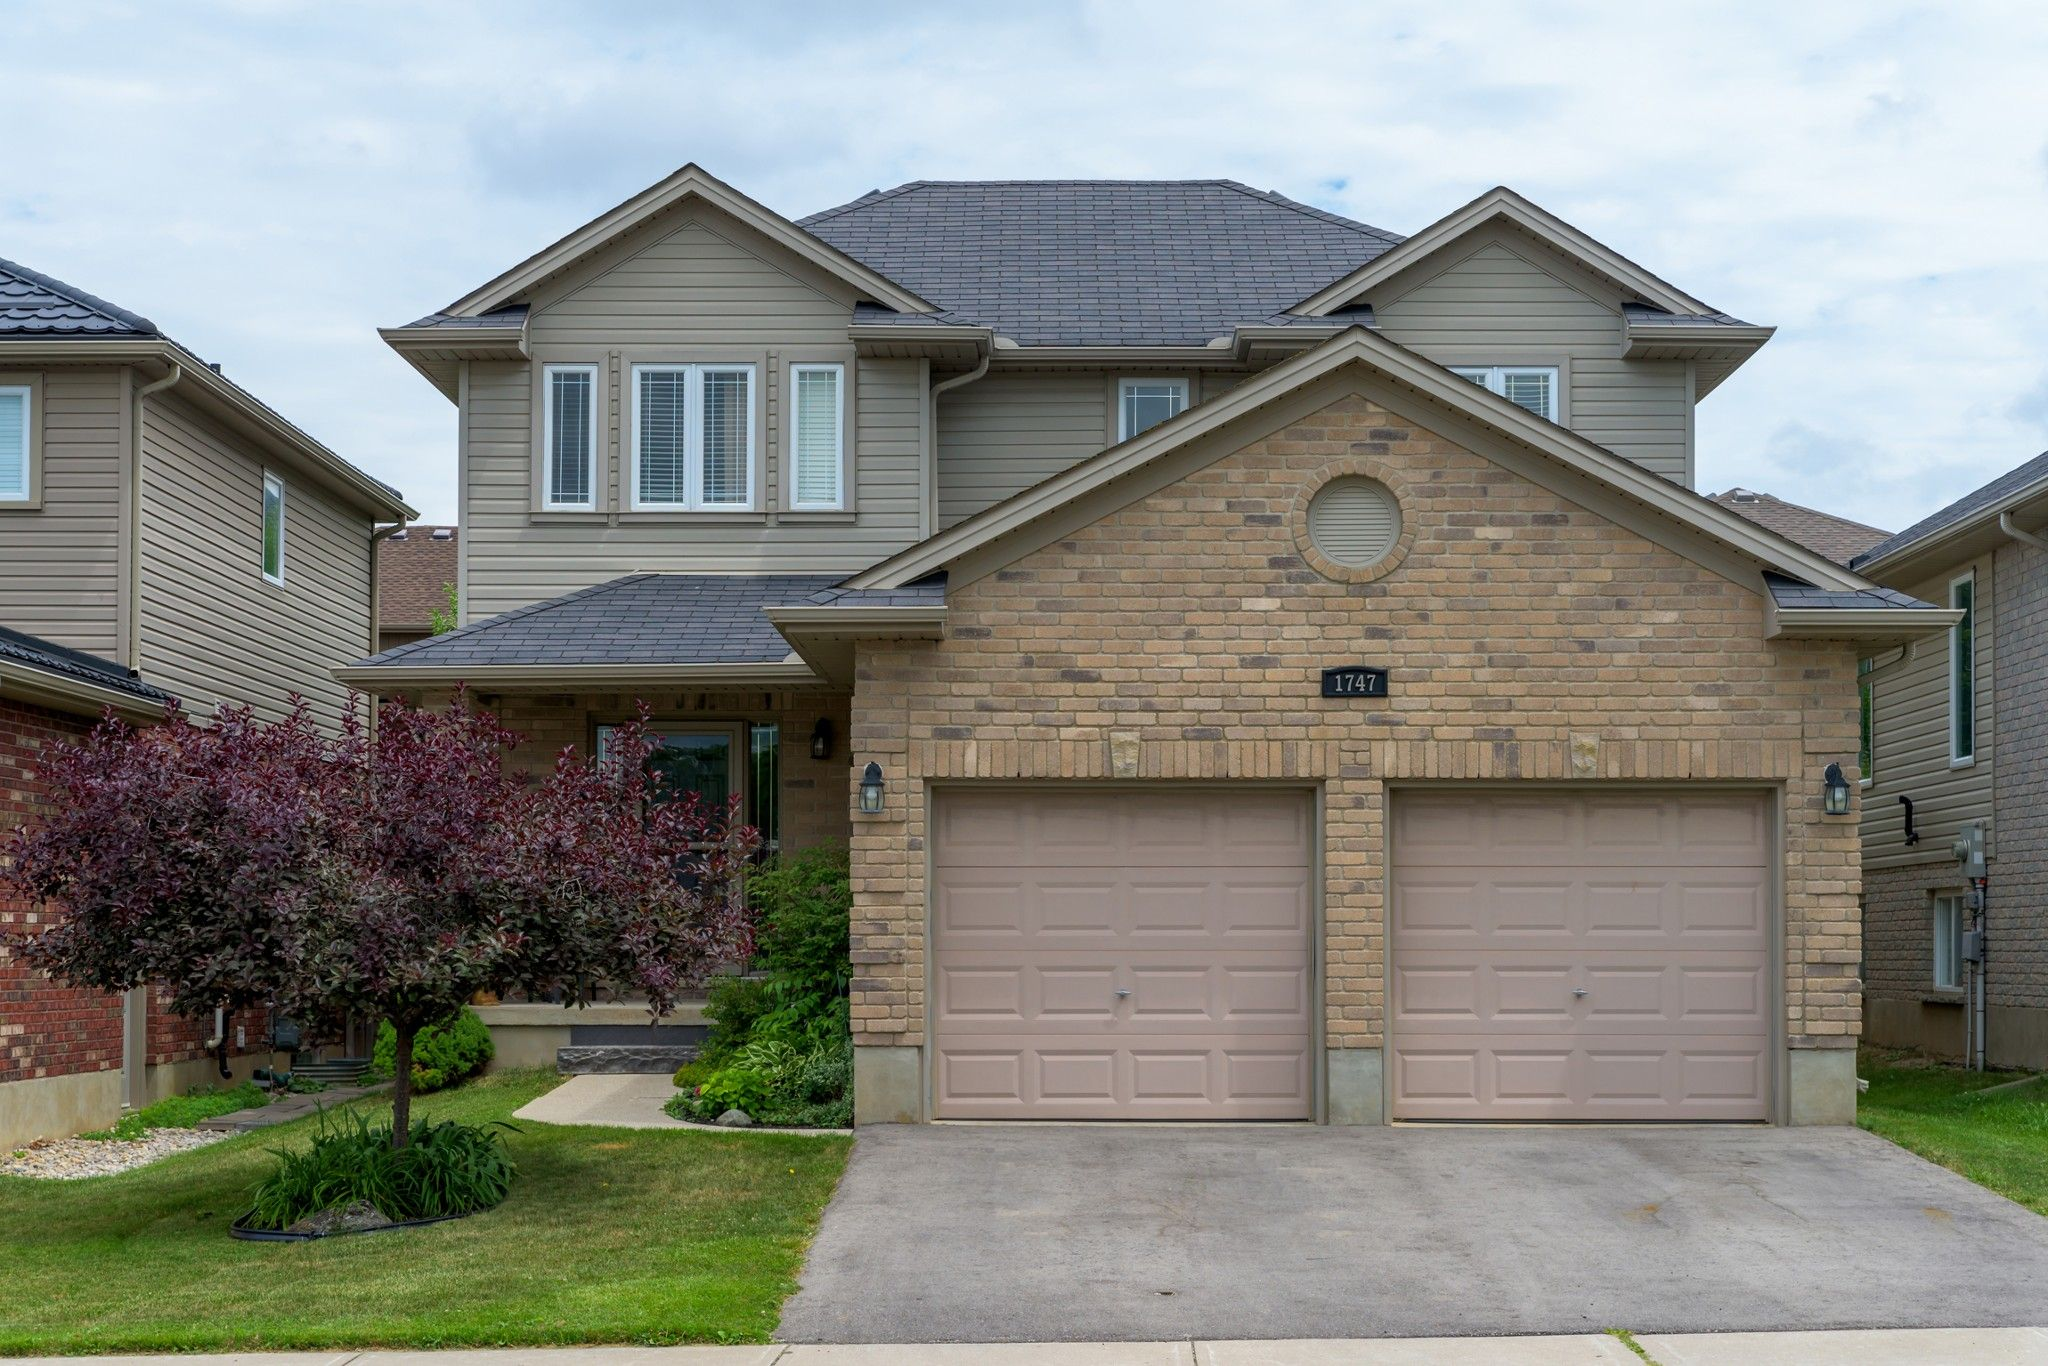 Main Photo: 1747 HEALY Road in London: Property for sale : MLS®# 276271